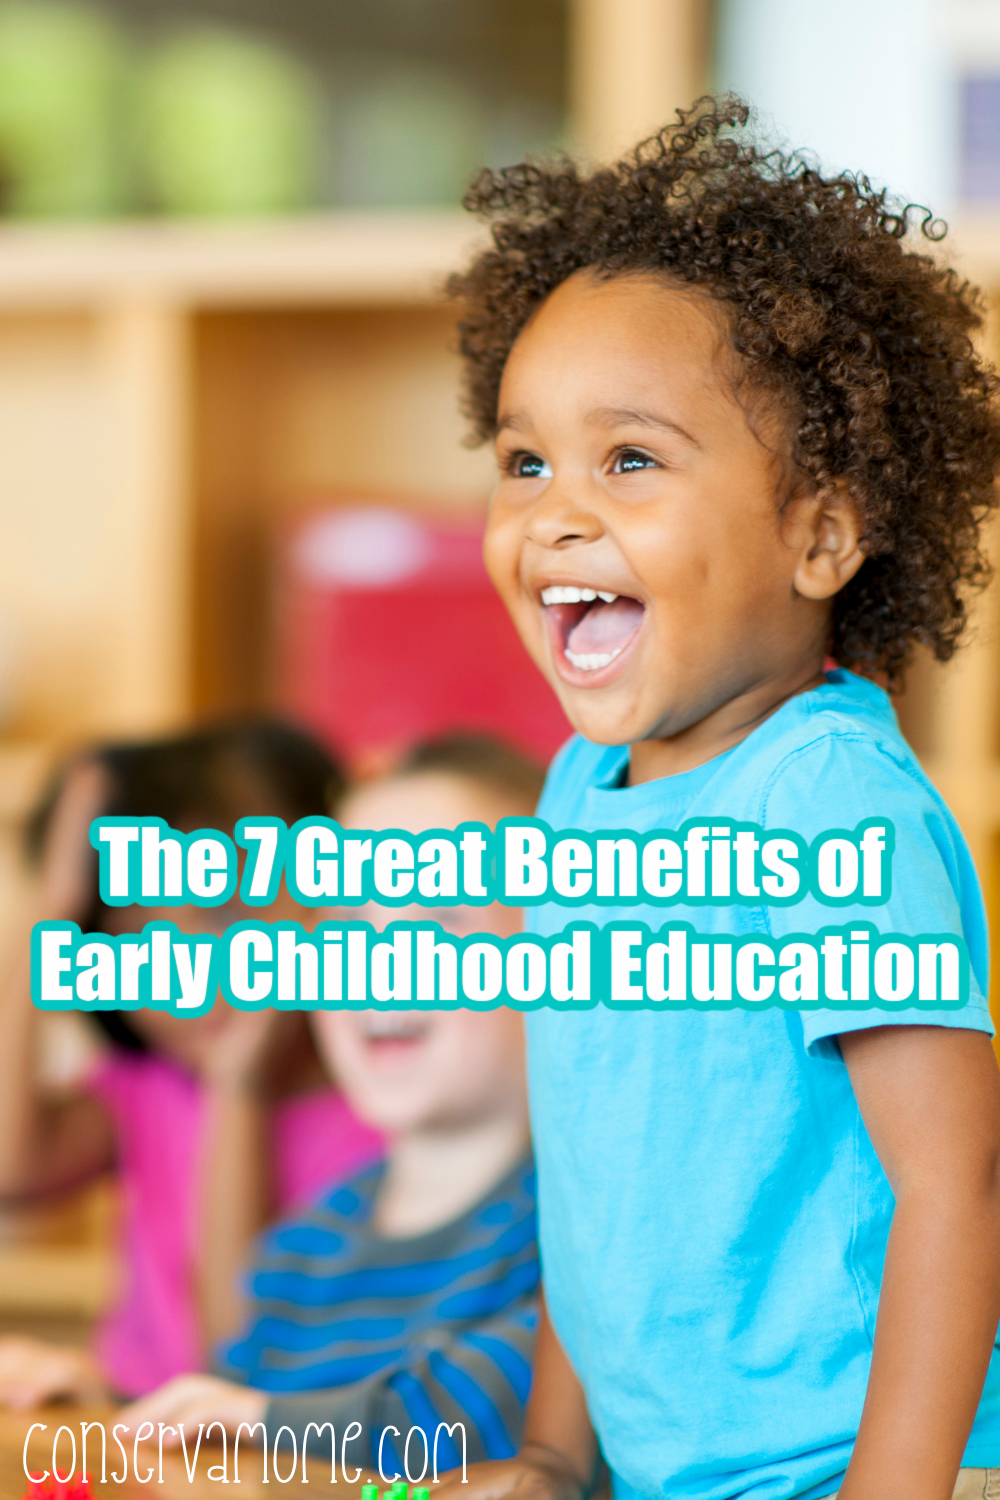 The 7 Great Benefits of Early Childhood Education